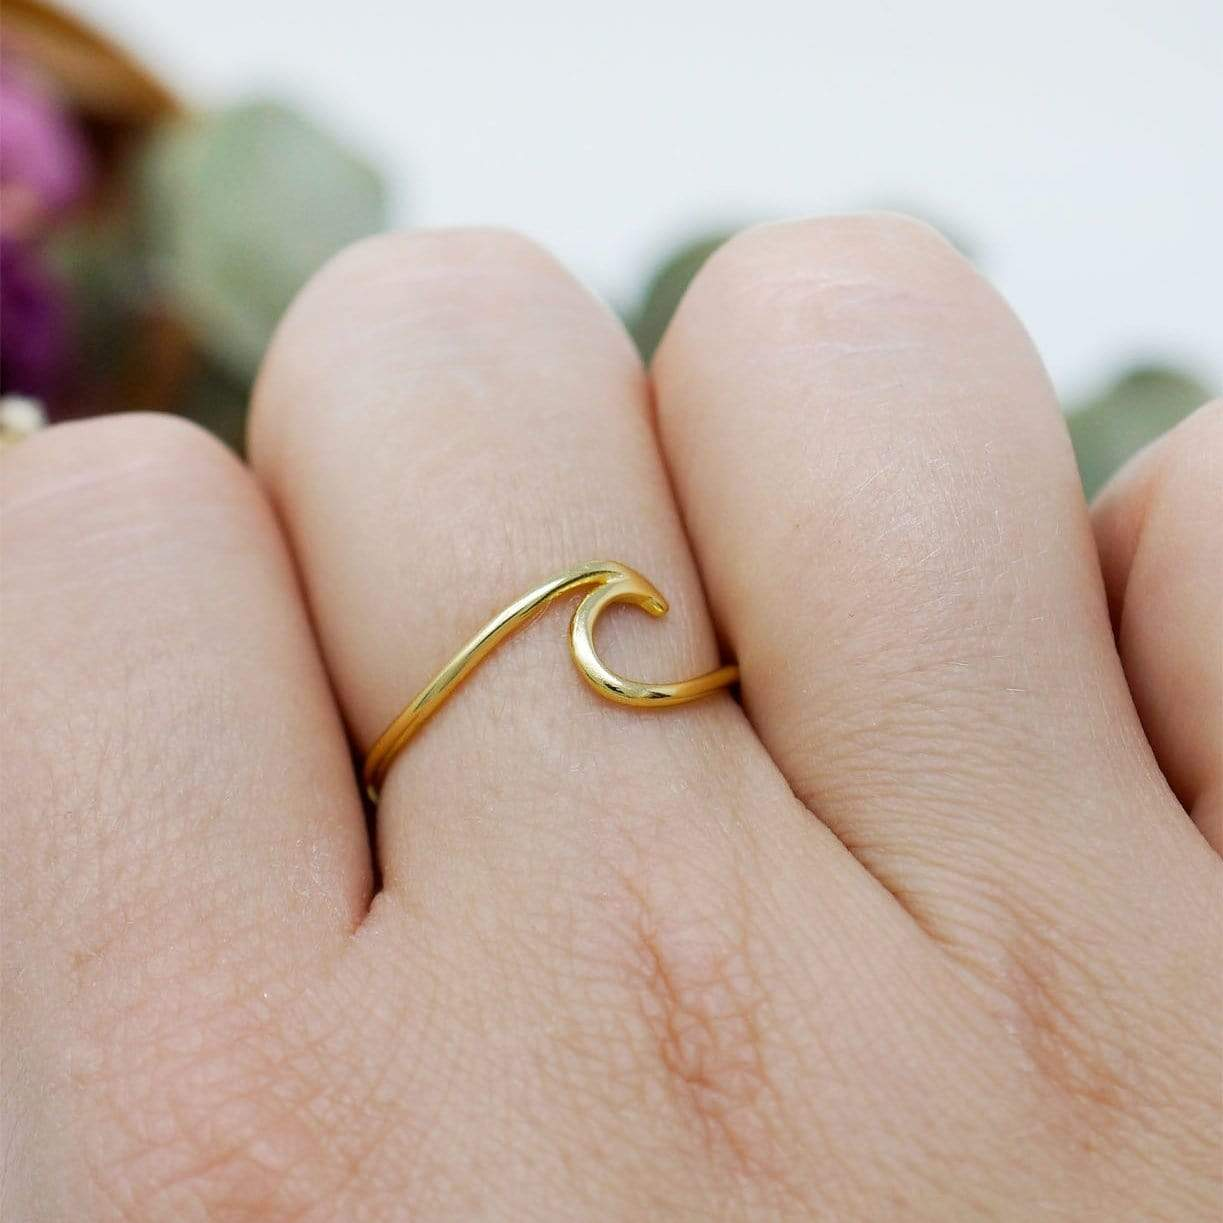 Subject 2 Change Ring Size 7 / Gold Wave Ring